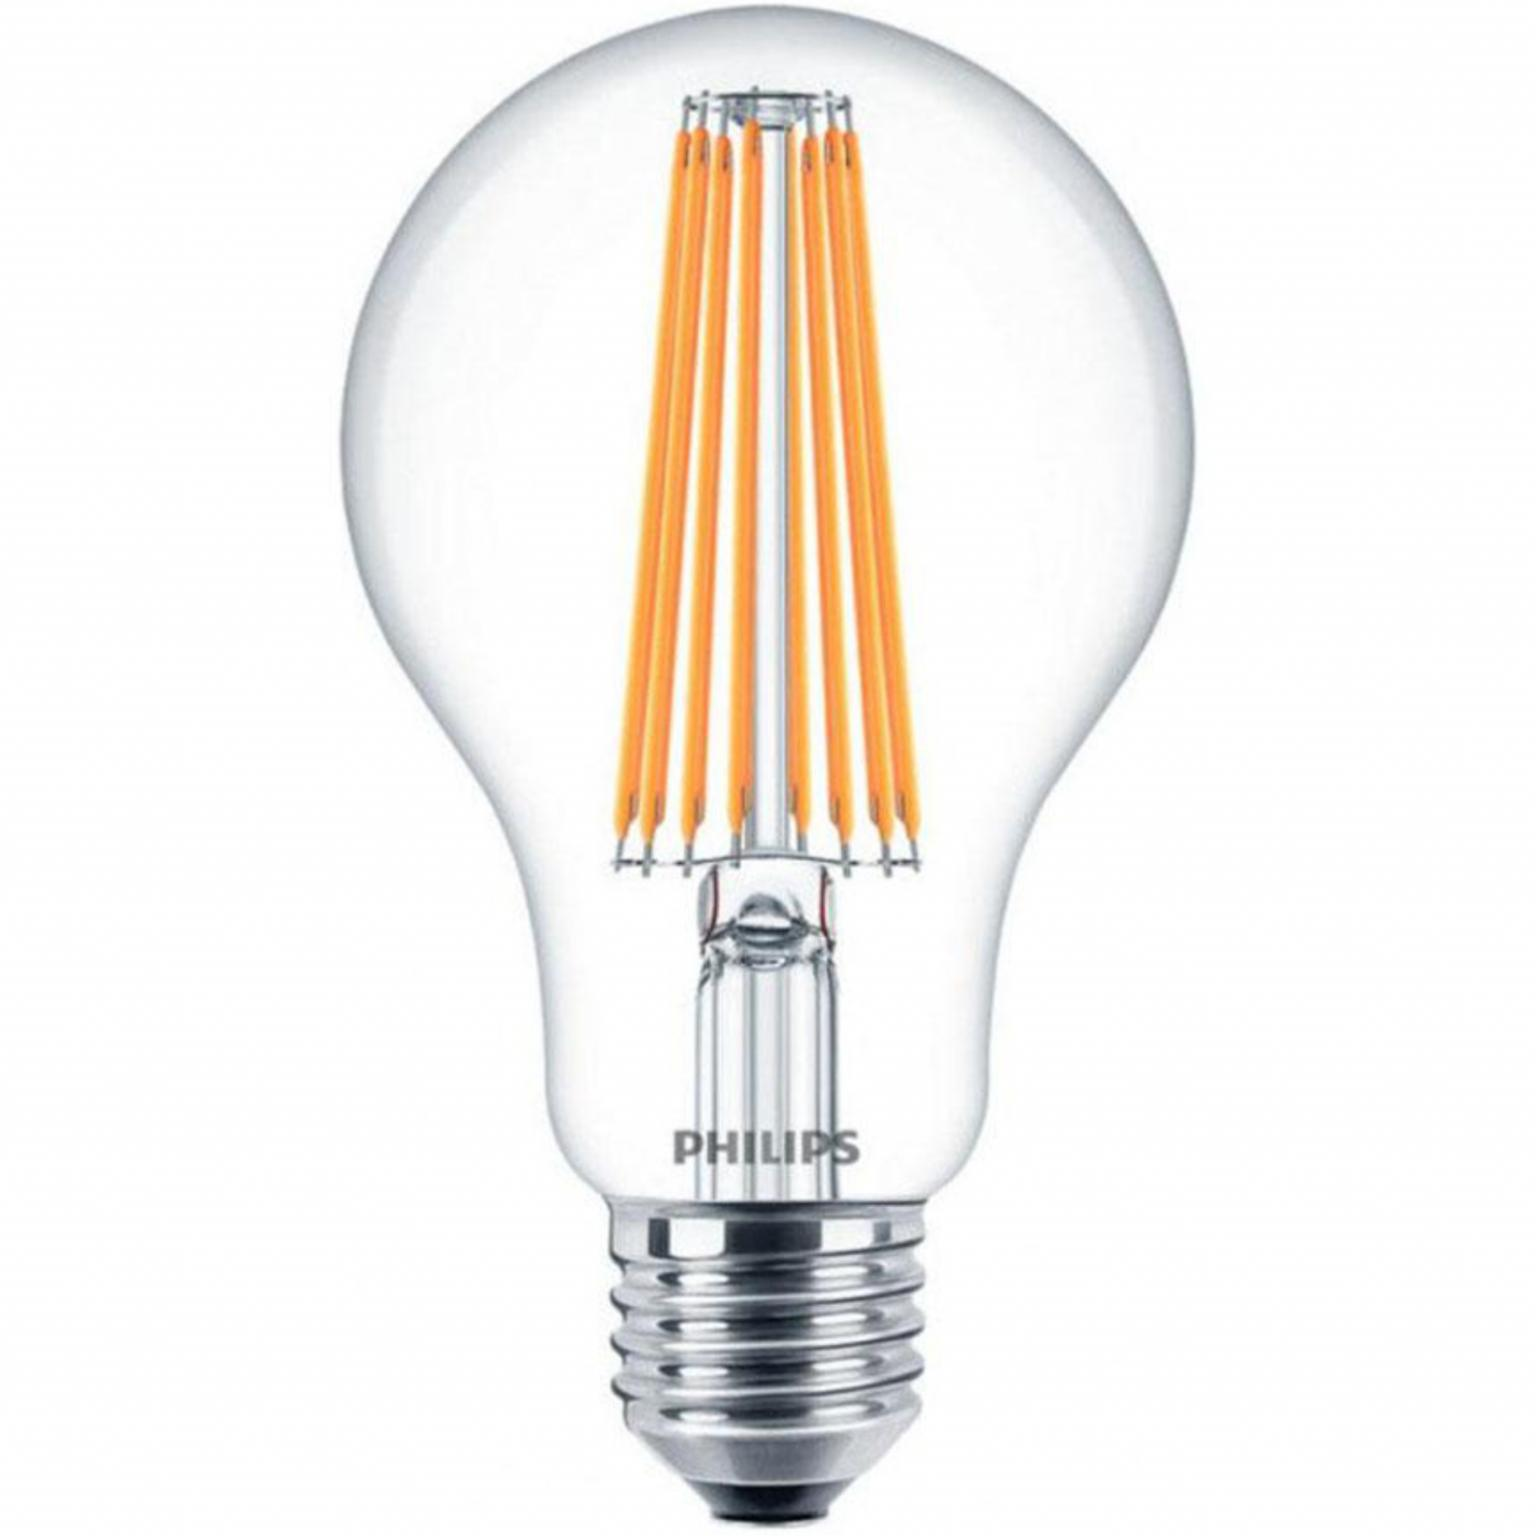 Philips Led Lamp - 1500 Lumen